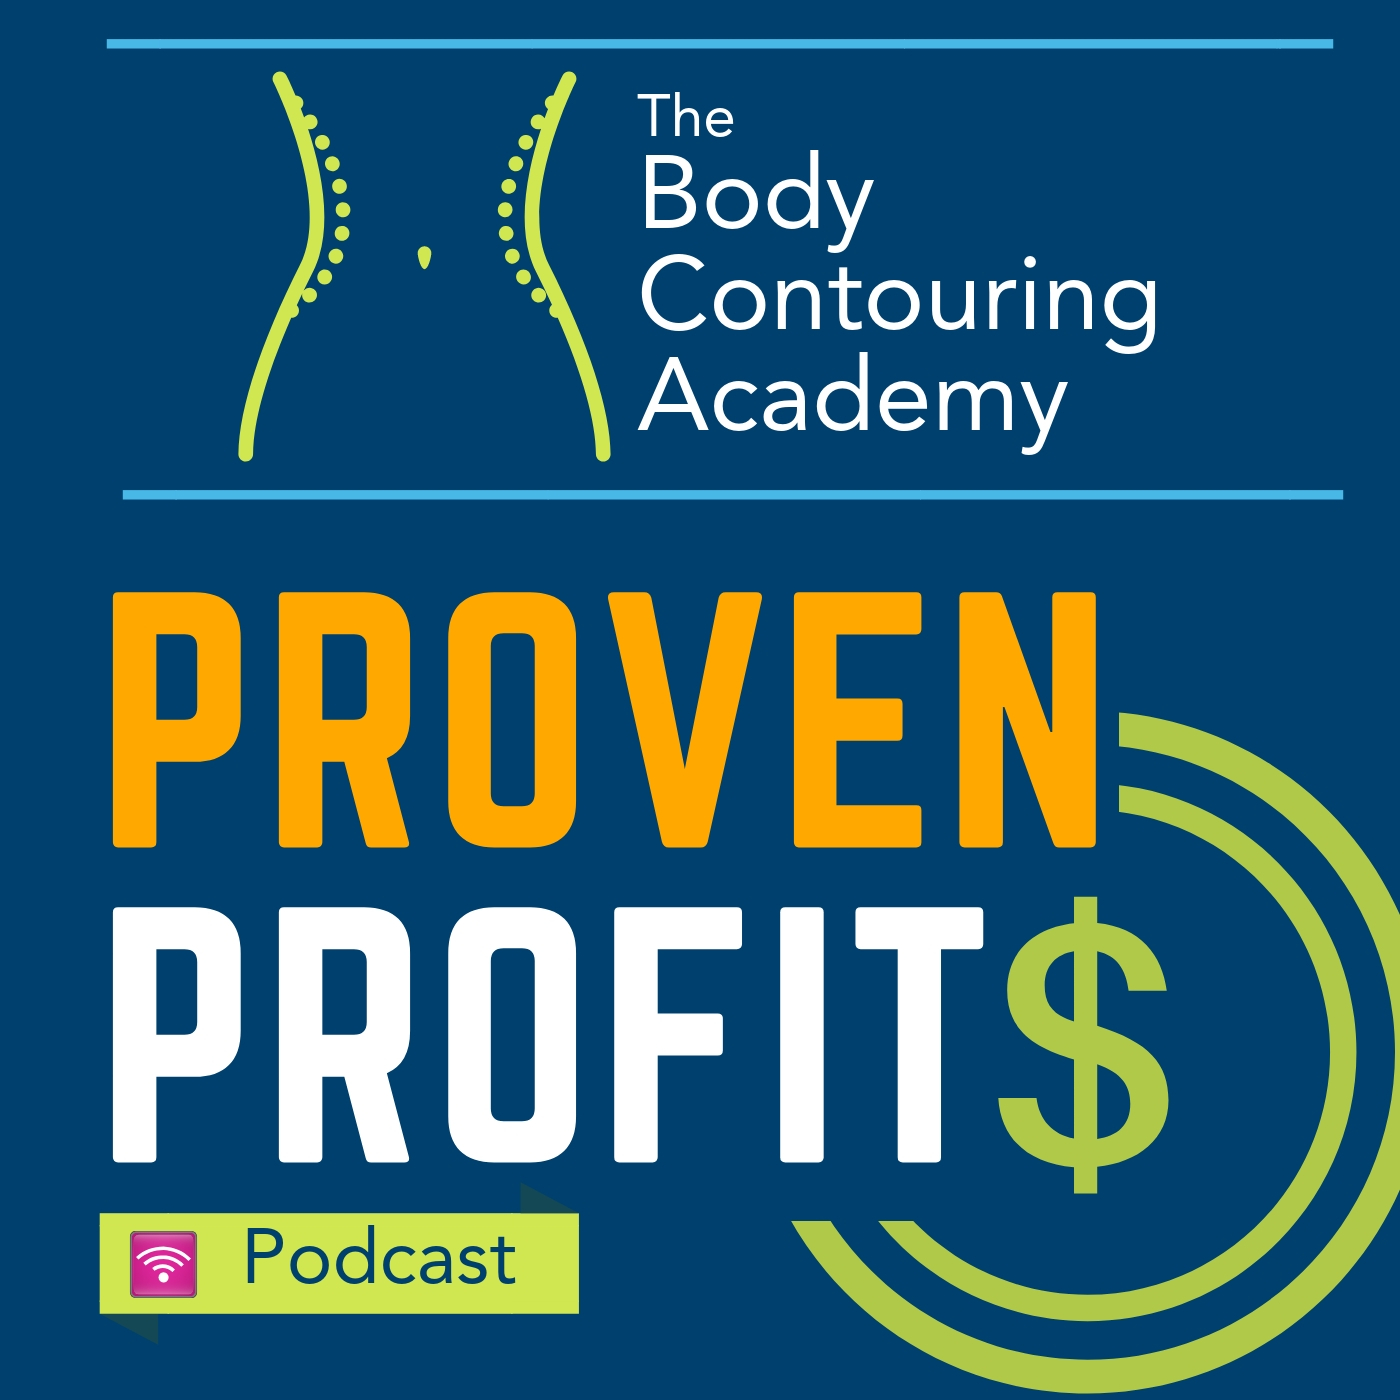 Artwork for podcast Body Contouring Academy's Proven Profits Podcast